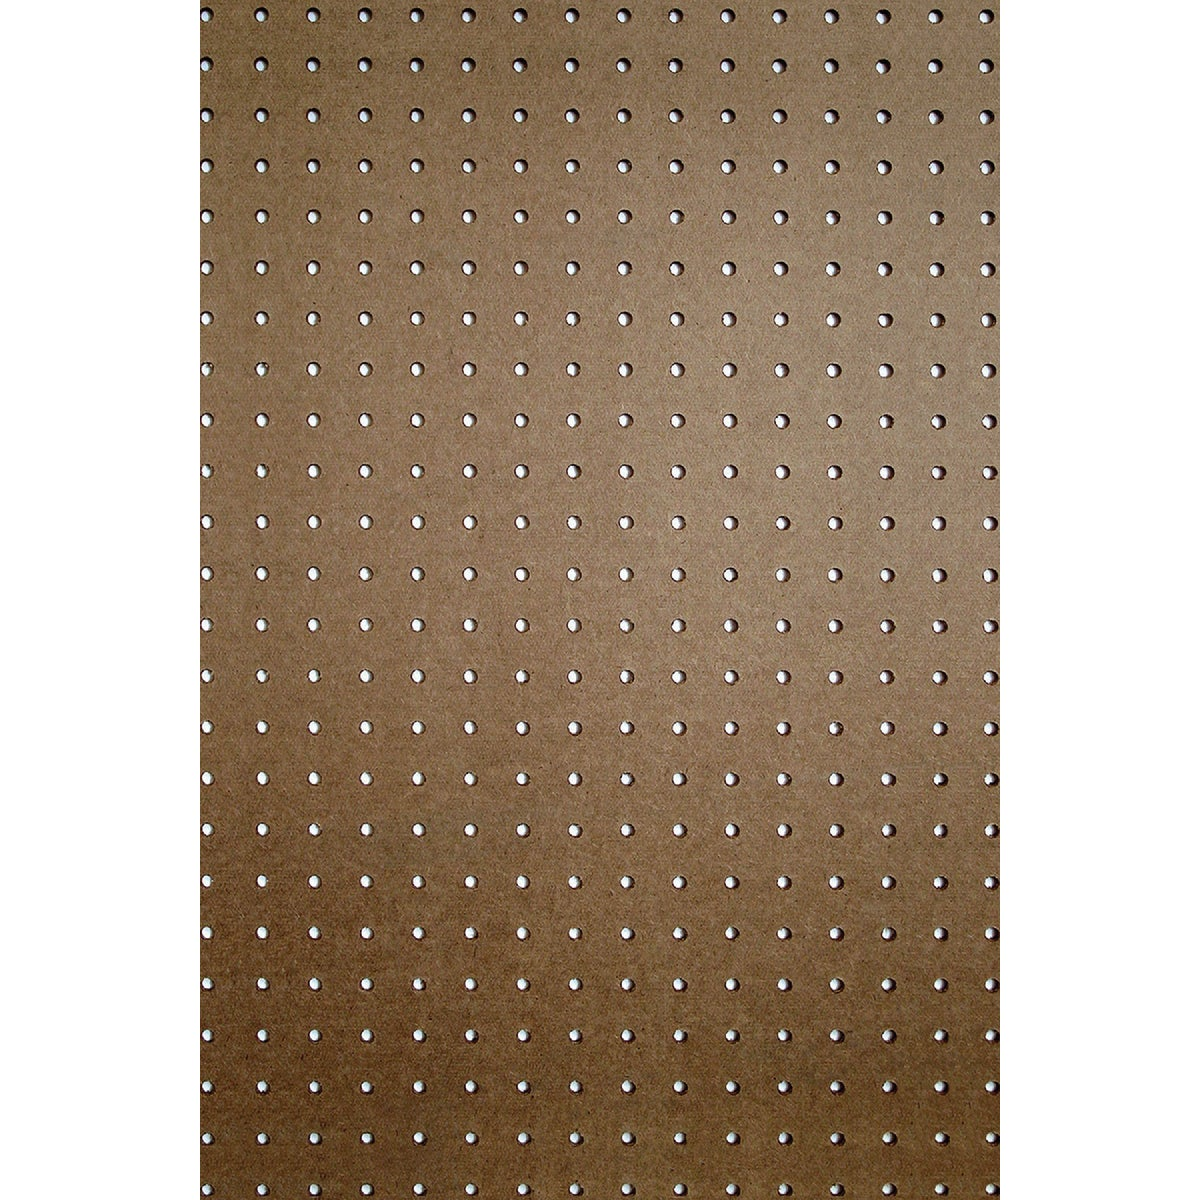 "1/8"" TEMPERED PEGBOARD - PTS125 by Dpi Decorative Panel"